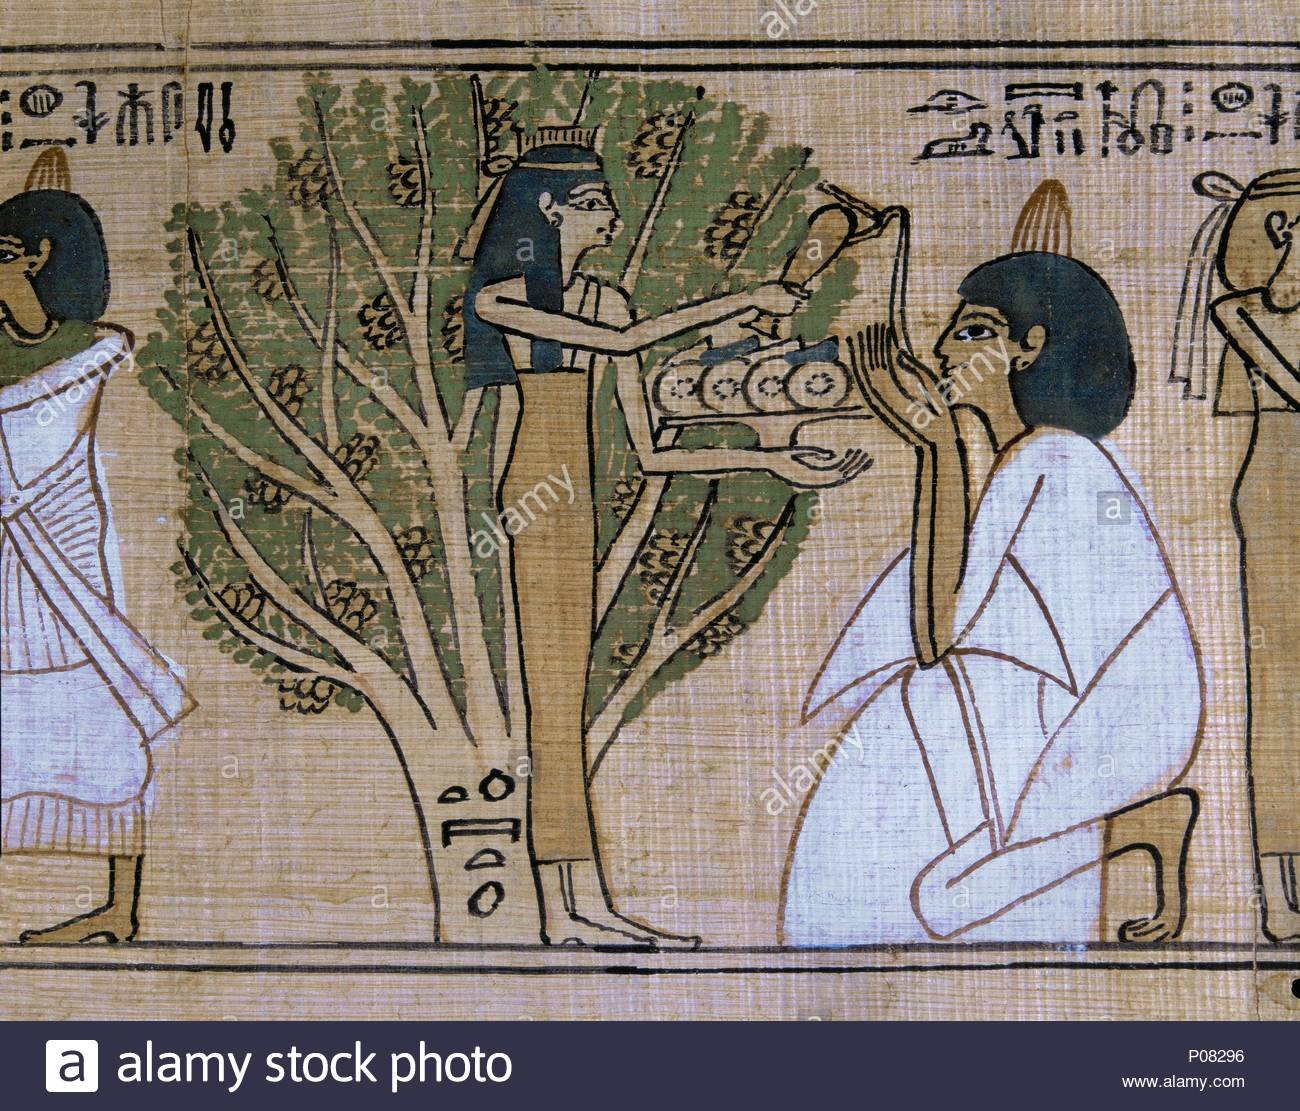 Egyptian Cuisine Book Goddess Nut Stock Photos And Goddess Nut Stock Images Alamy